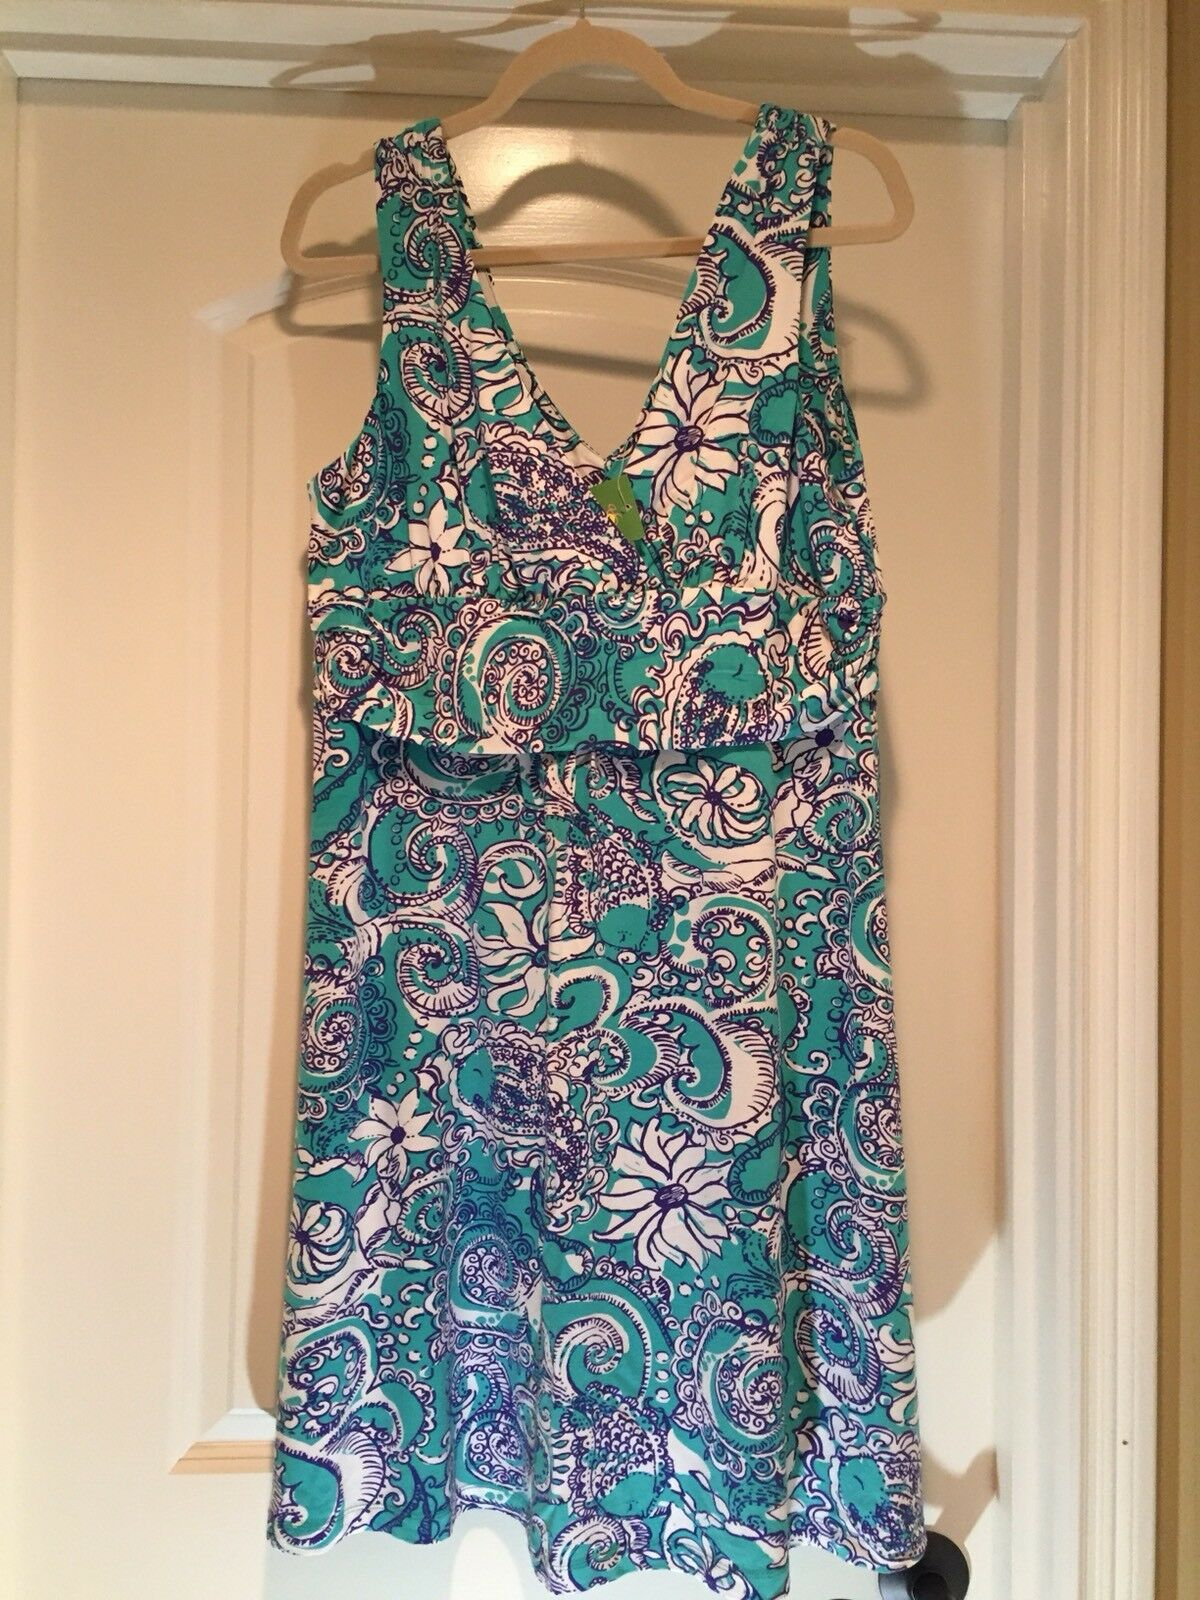 Lilly Pulitzer Seafoam Grün Montauk Shianne Dress XL